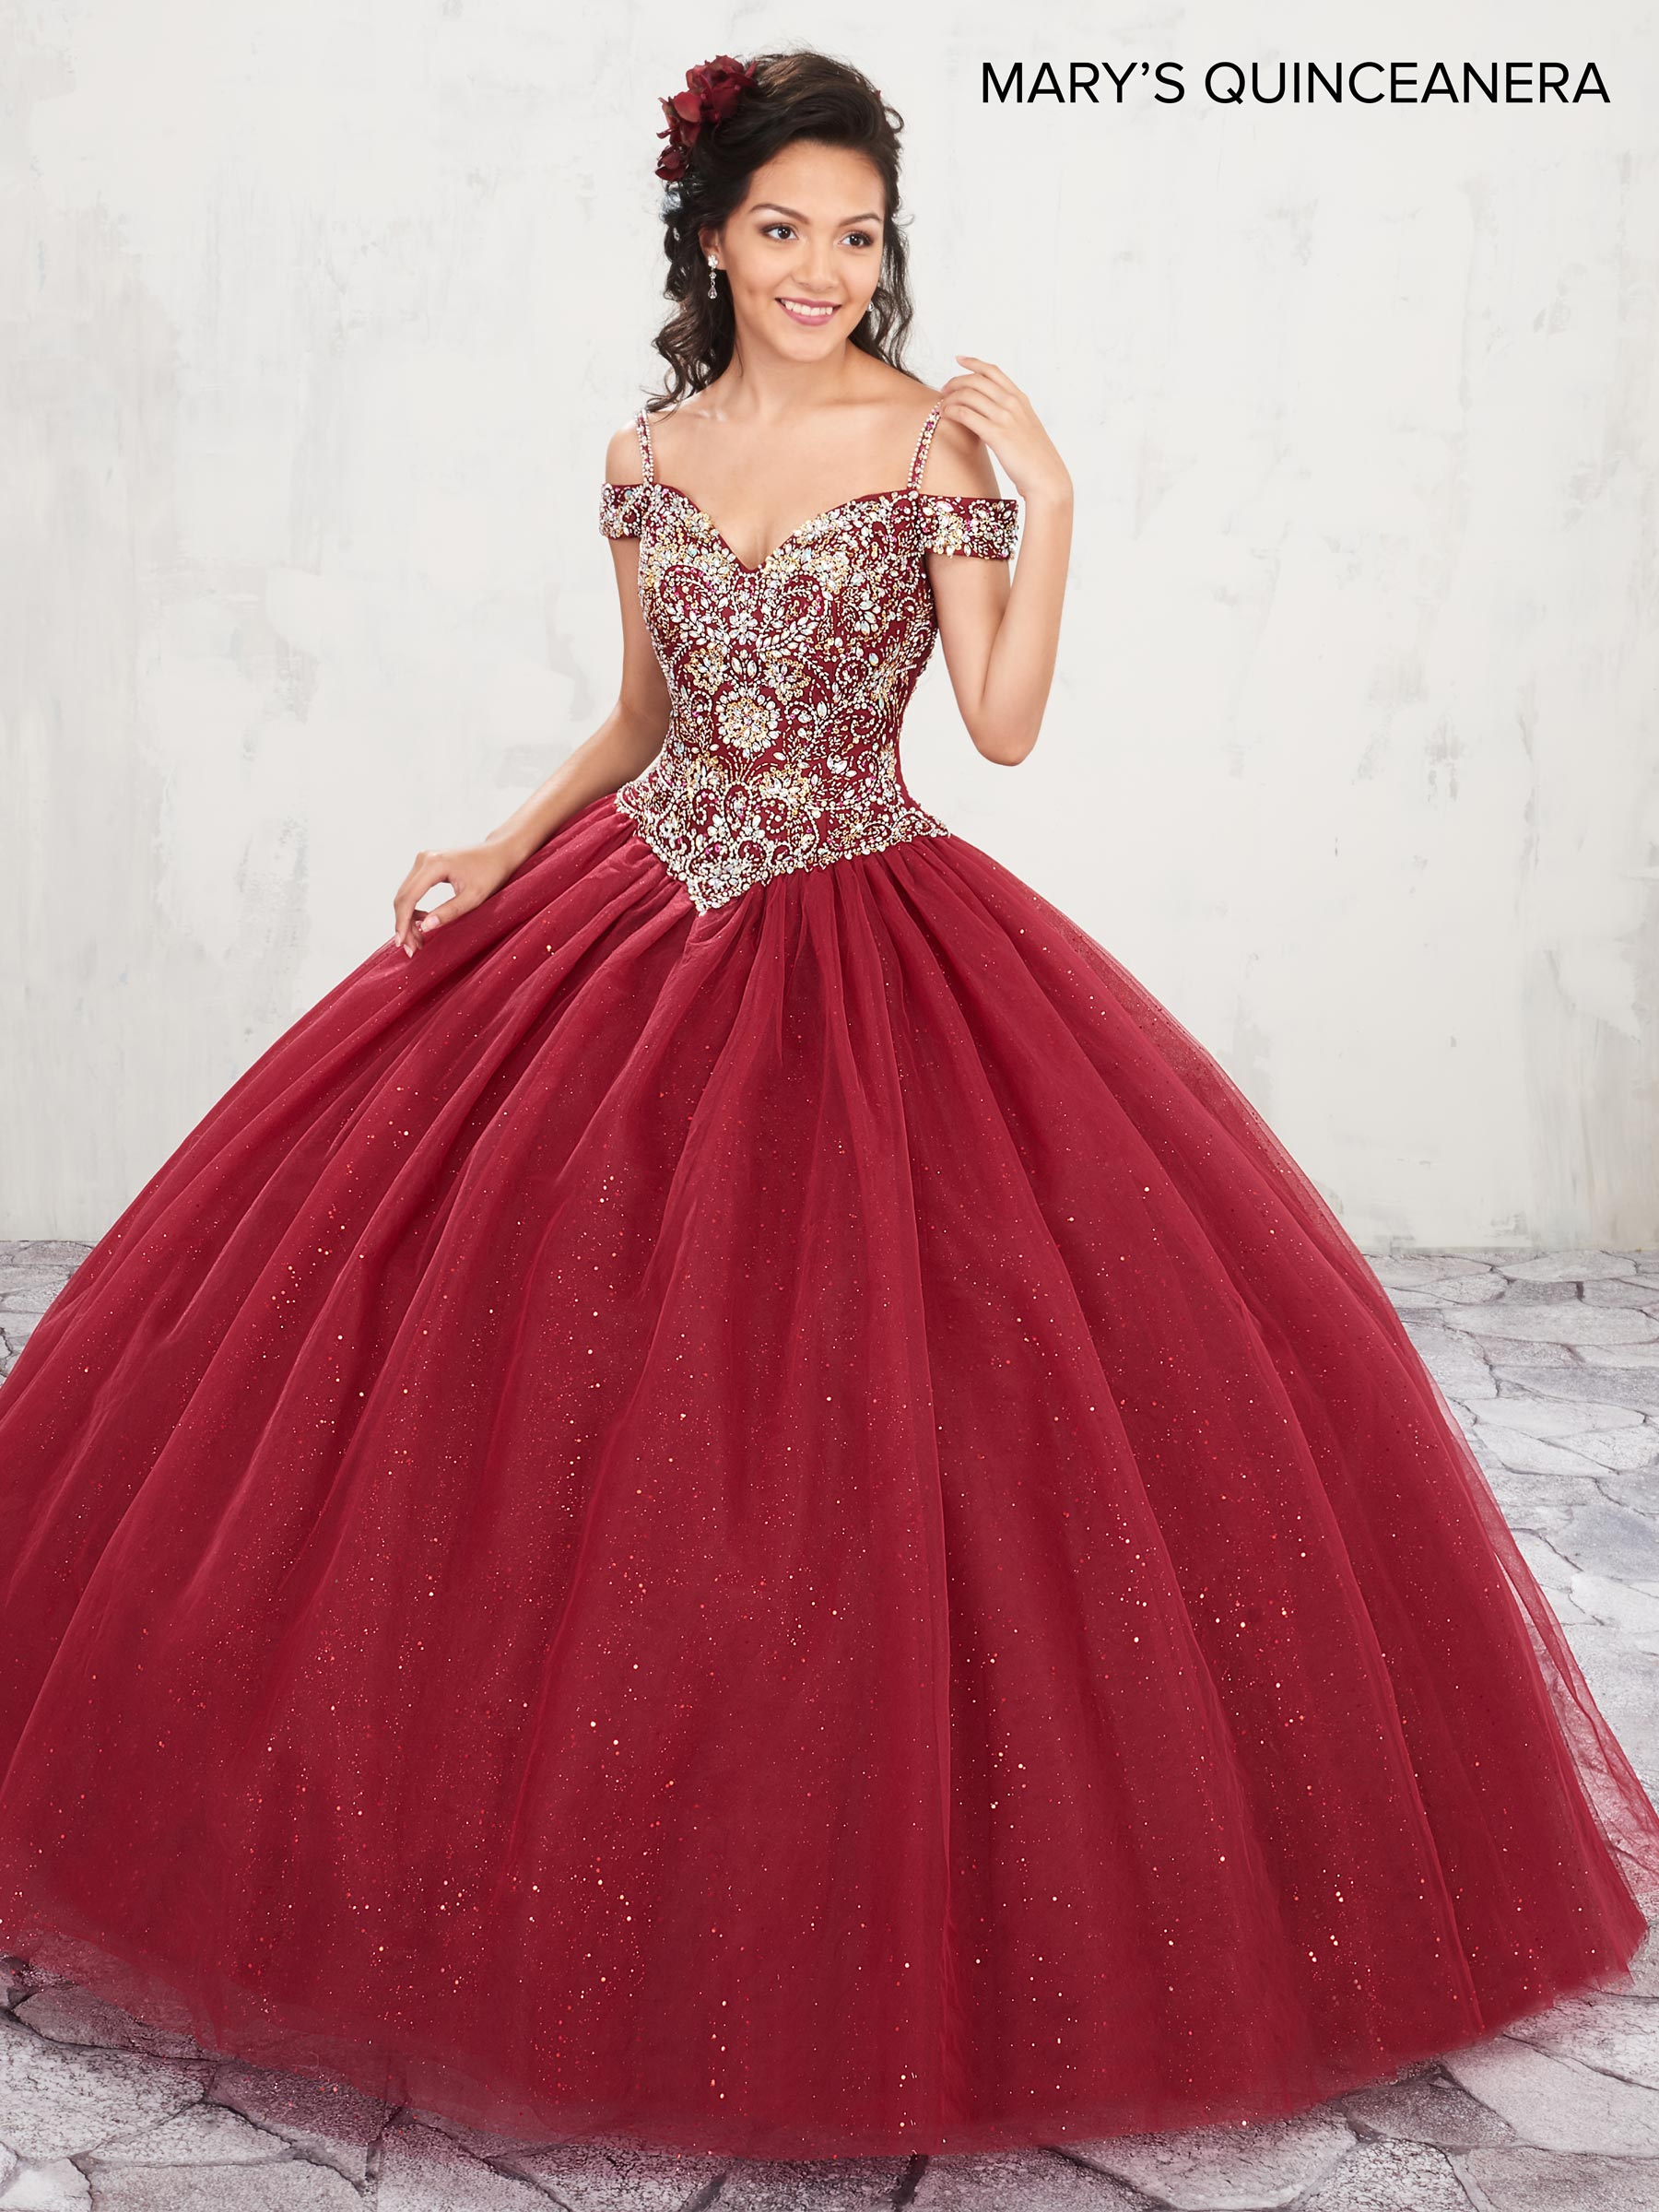 Marys Quinceanera Dresses | Style - MQ1001 in Wine, Lilac, White ...